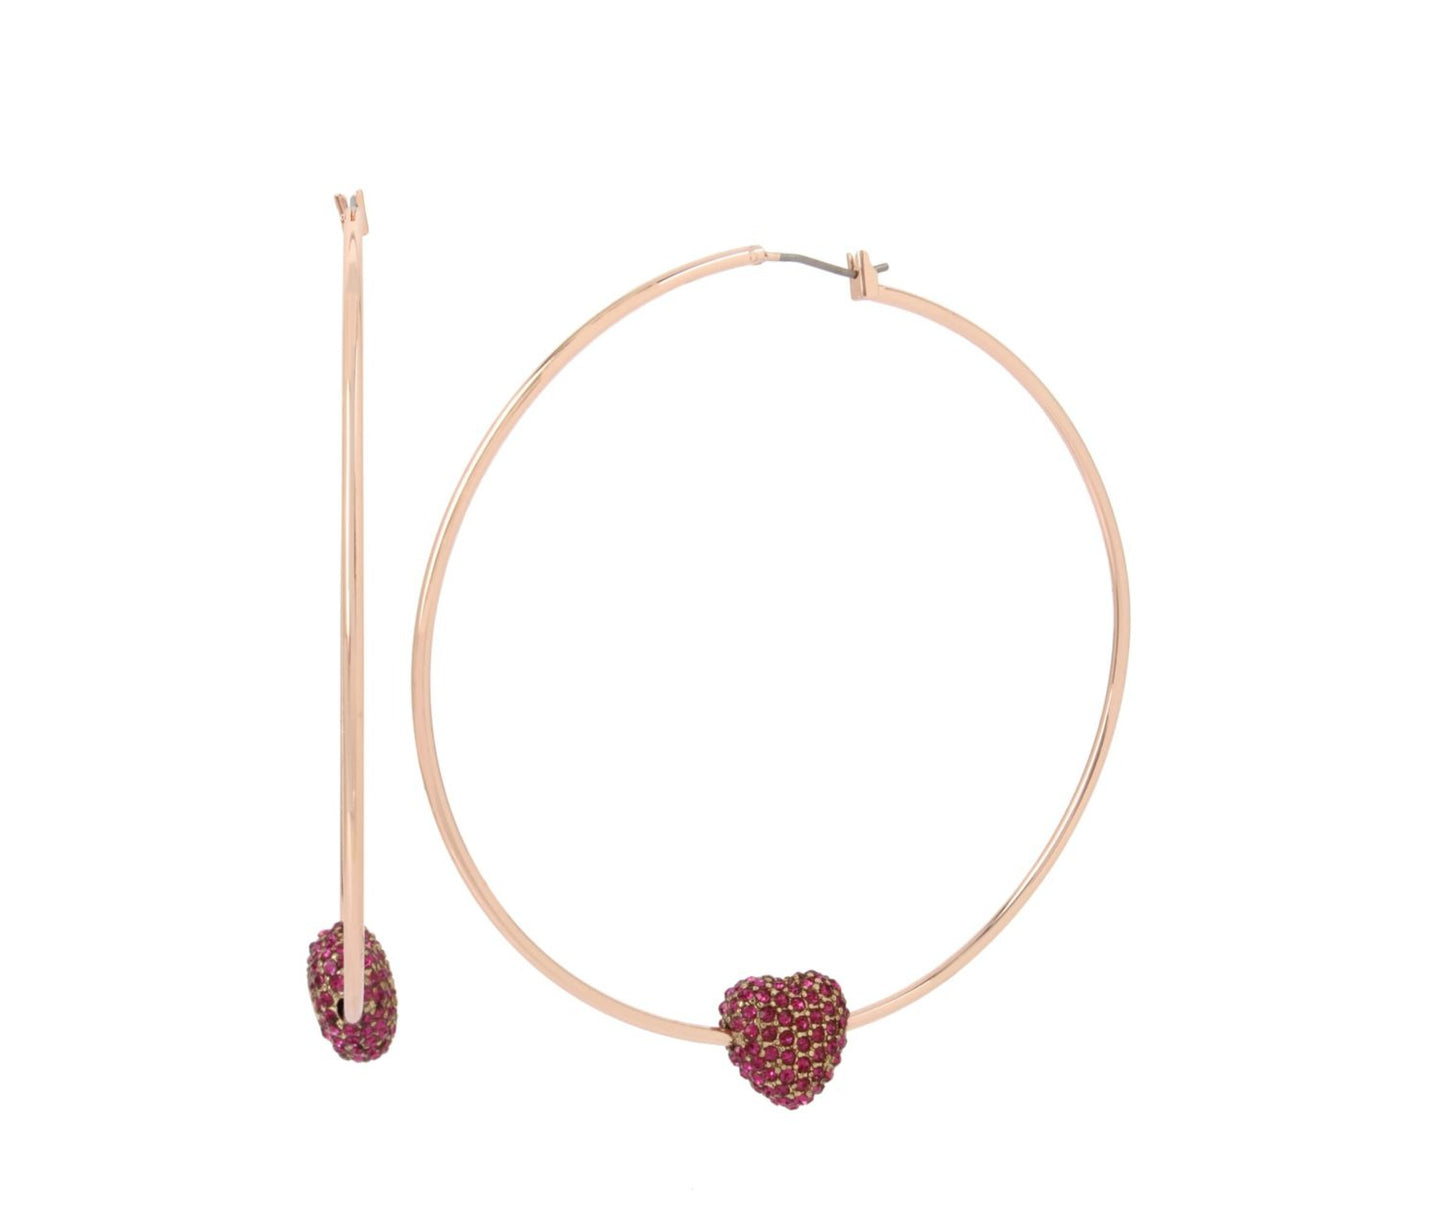 BETSEY BLAST HEART HOOP EARRINGS FUCHSIA - JEWELRY - Betsey Johnson